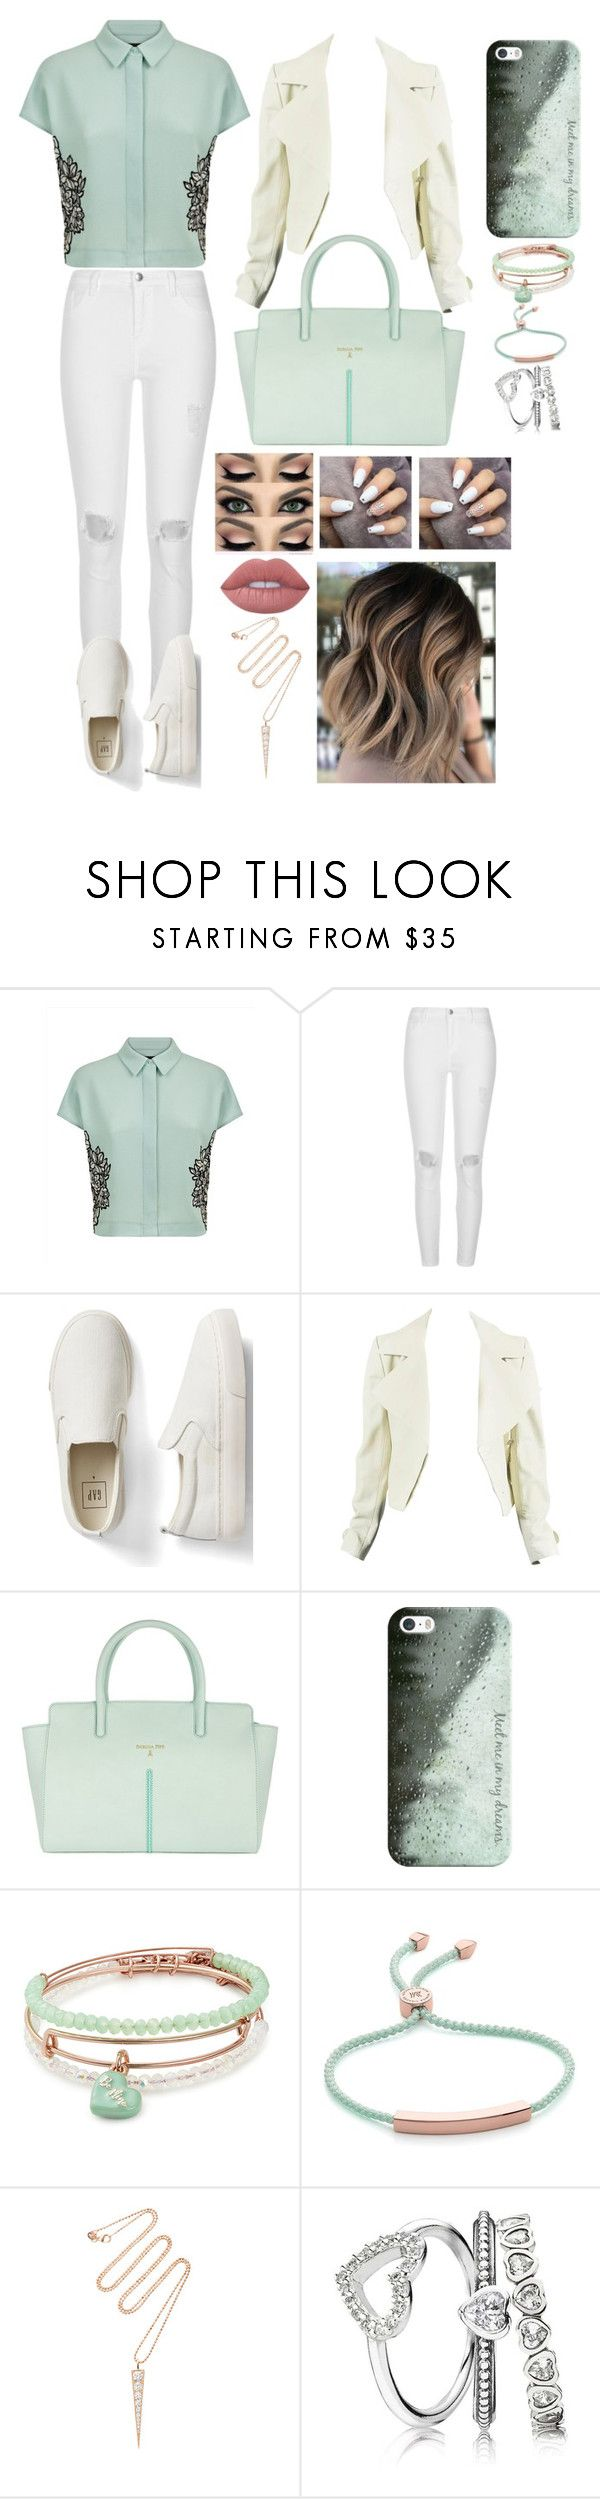 """Random Outfit #51"" by x1dlover4everx ❤ liked on Polyvore featuring Jaeger, River Island, Gap, Patrizia Pepe, Casetify, Alex and Ani, Monica Vinader, Anita Ko and Lime Crime"